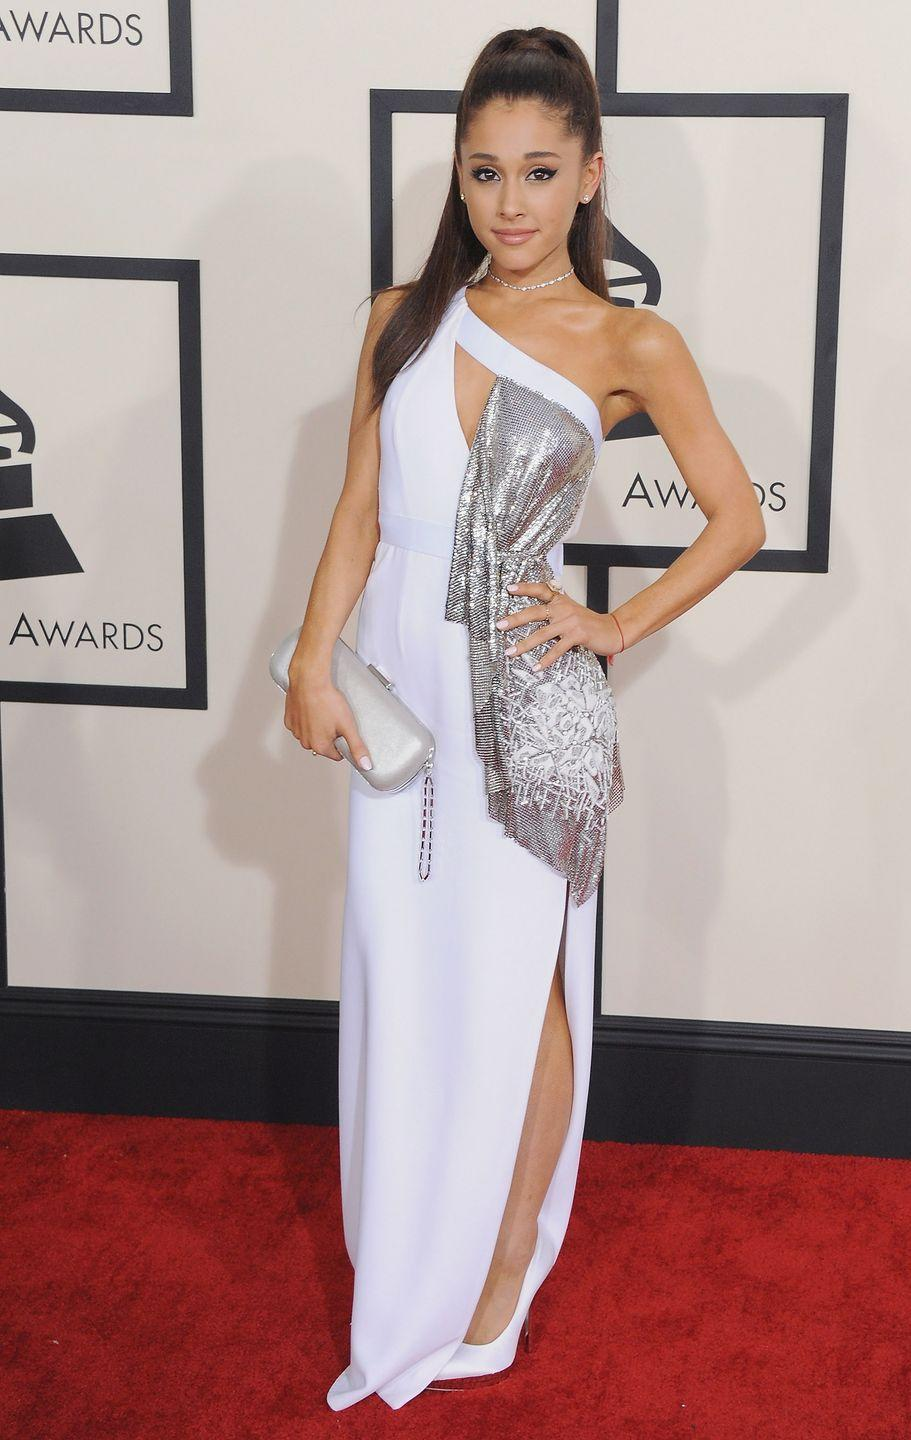 <p>Ariana Grande at the Grammys wearing a one-shouldered Versace gown.</p>